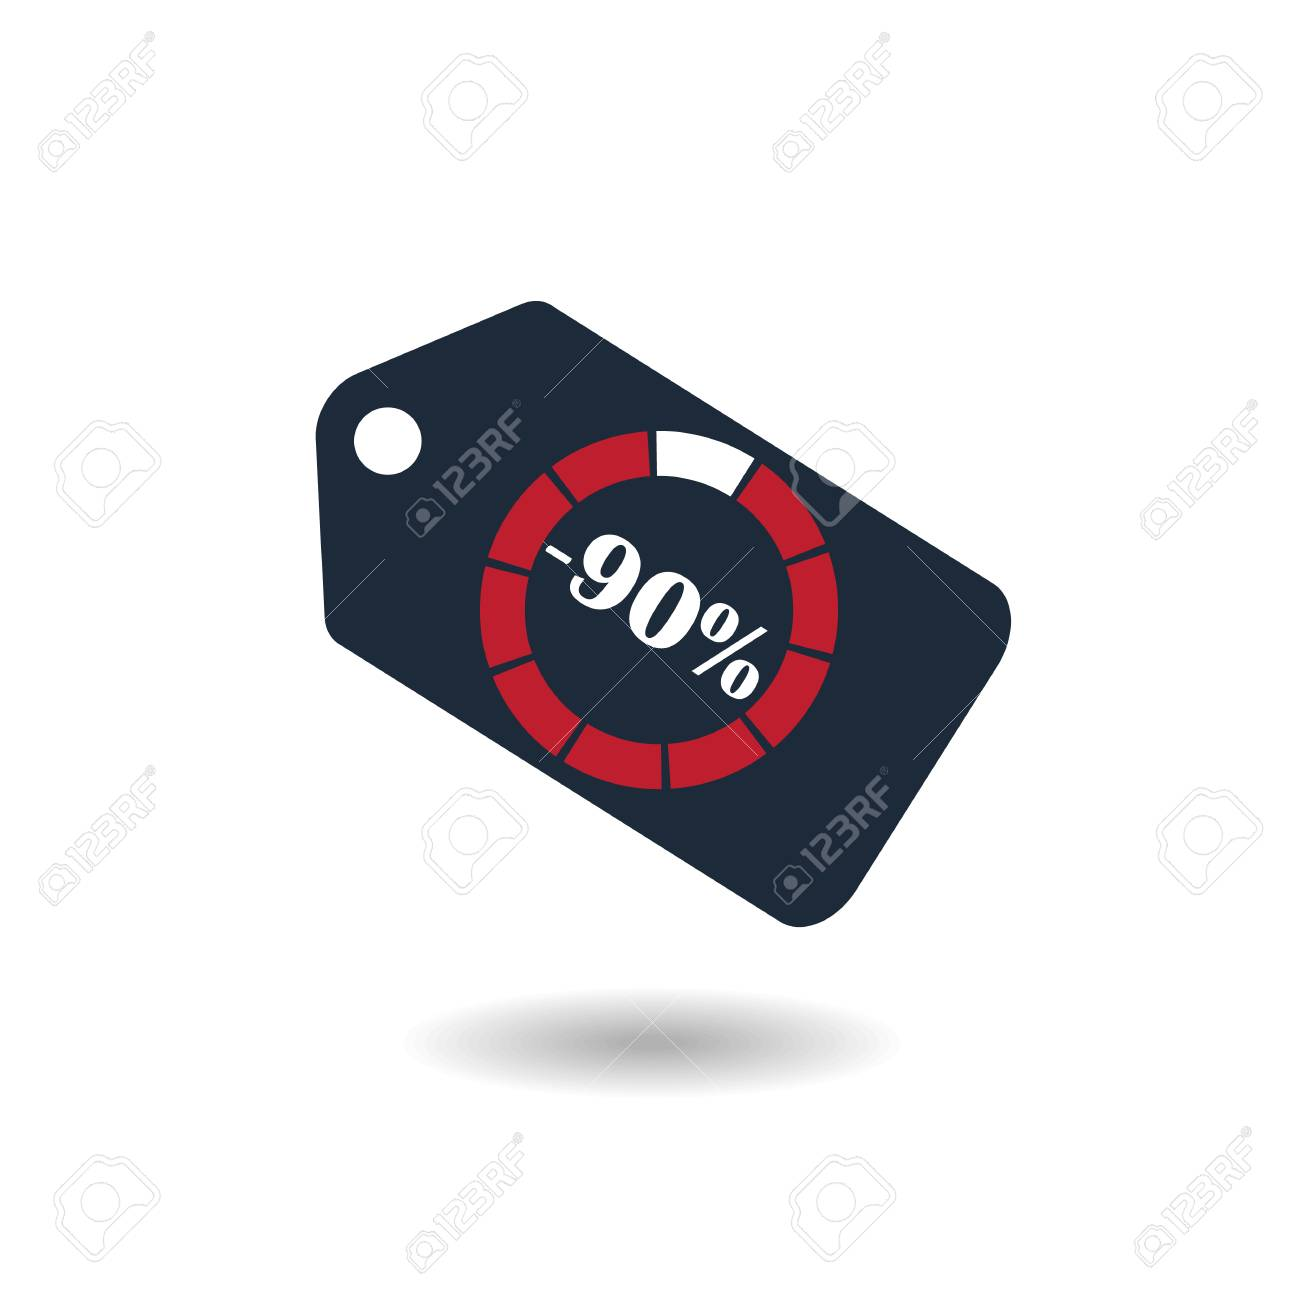 Sale Tag With Pie Chart Diagram Icon 90 Sale Black Isolated